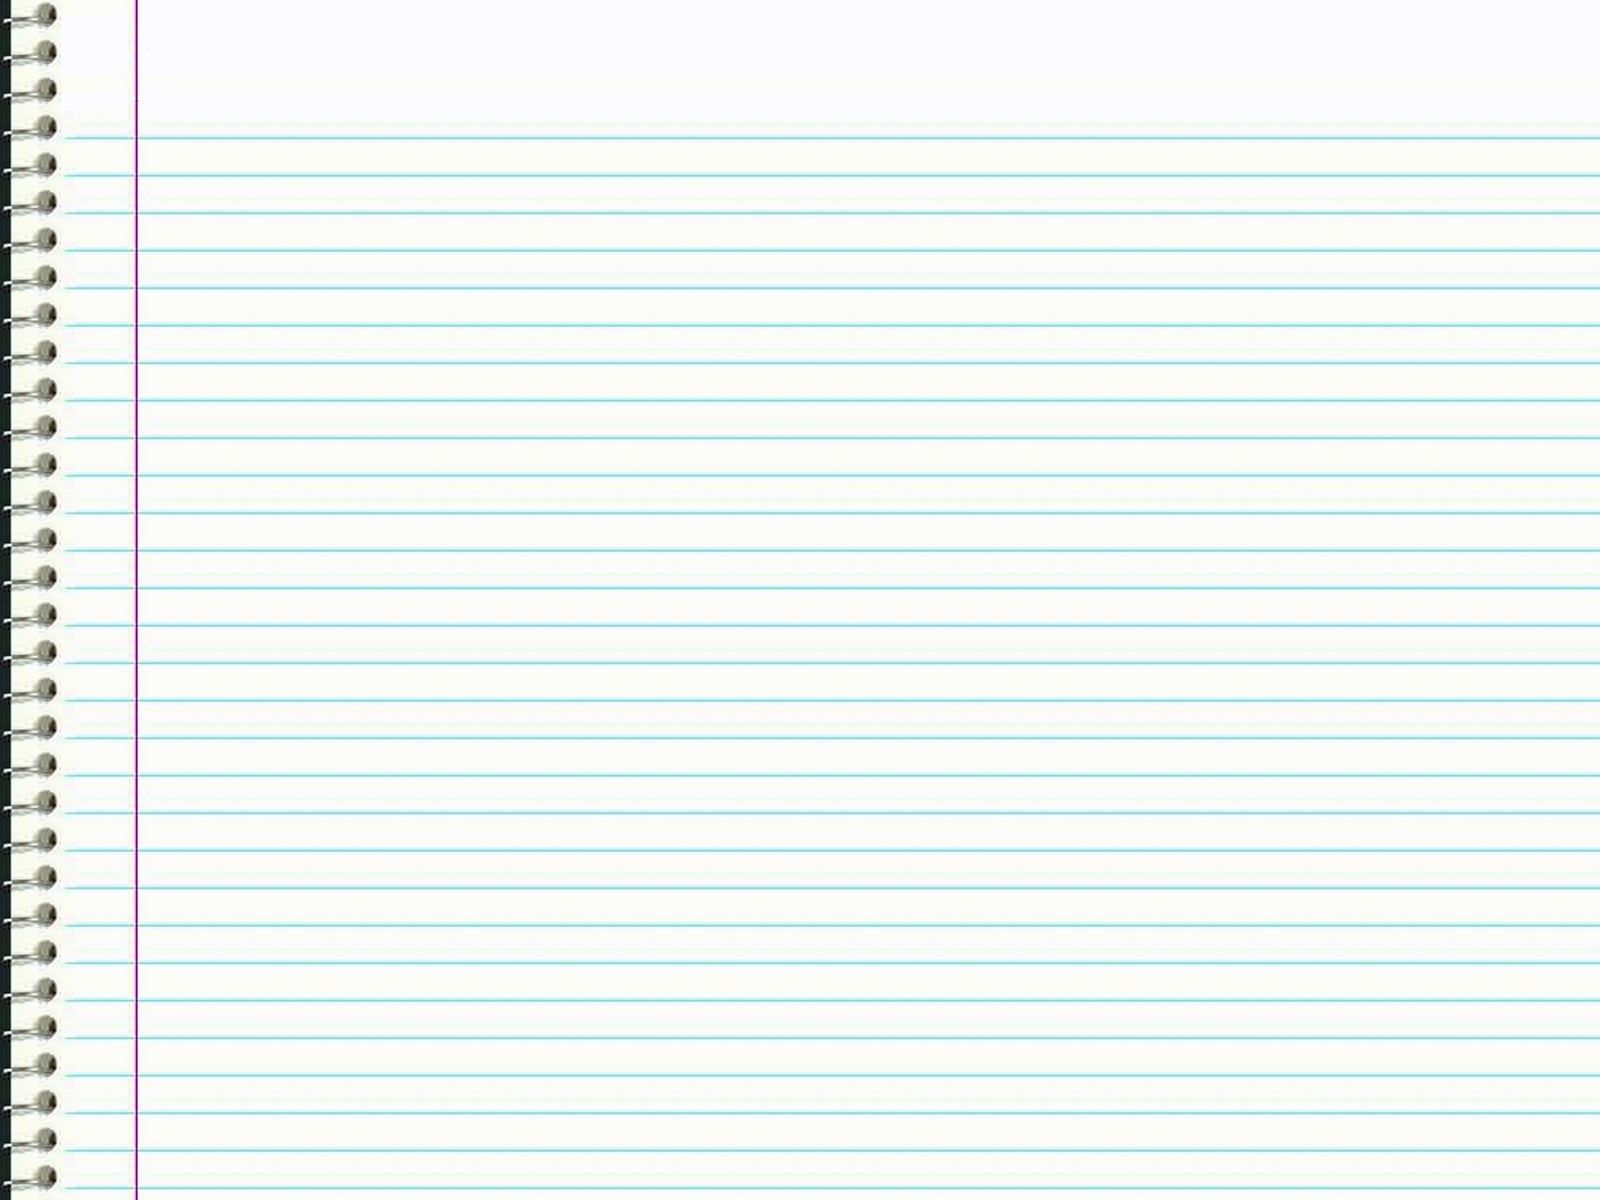 notebook paper download – Microsoft Word Notebook Paper Template